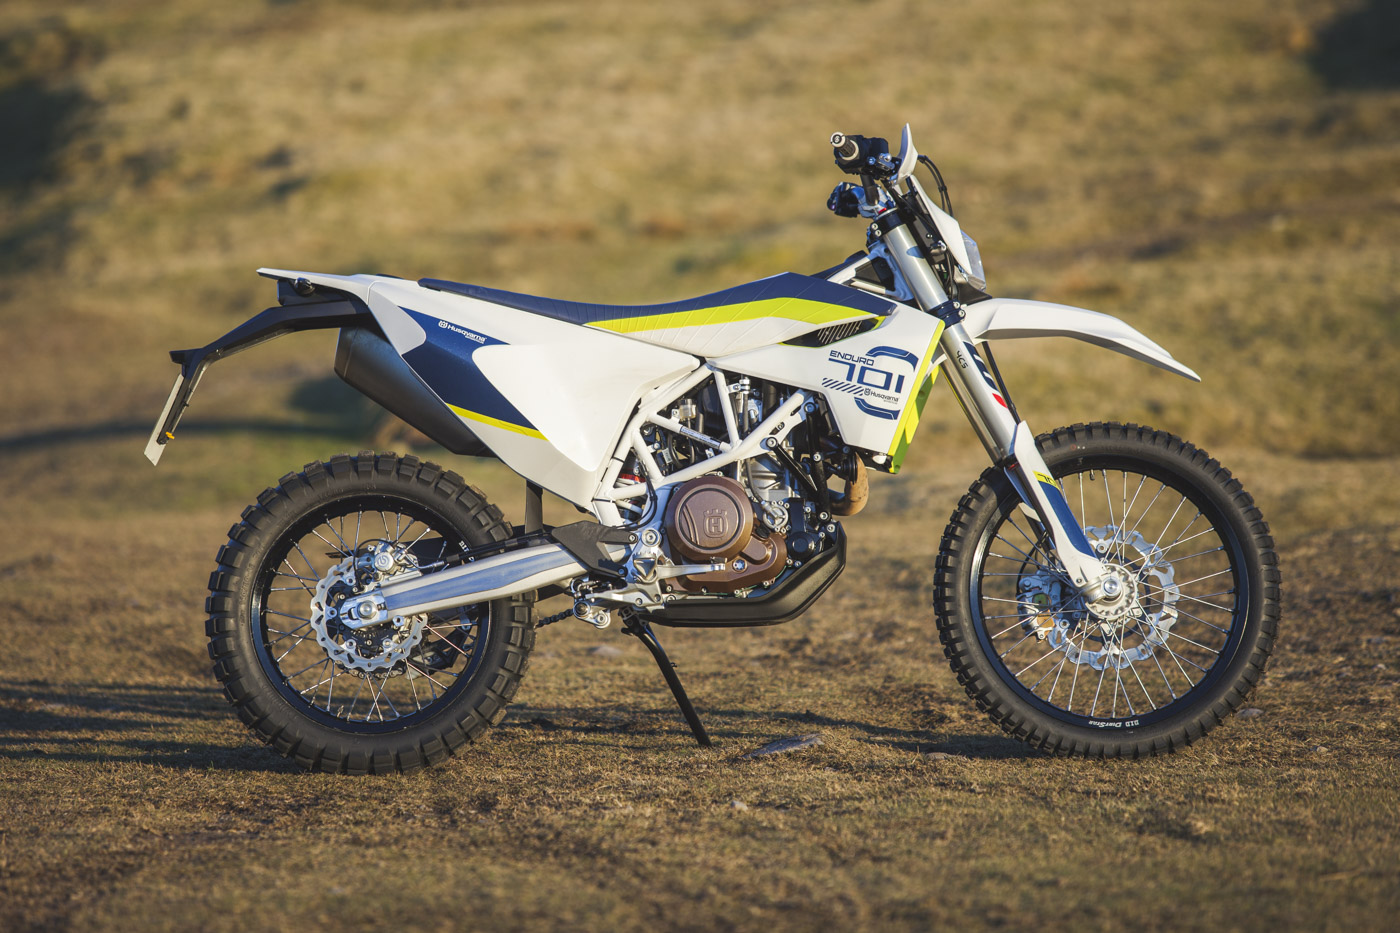 1bbd5d66b04 Seven things we learnt about the 2017 Husqvarna 701 Enduro | Brake ...